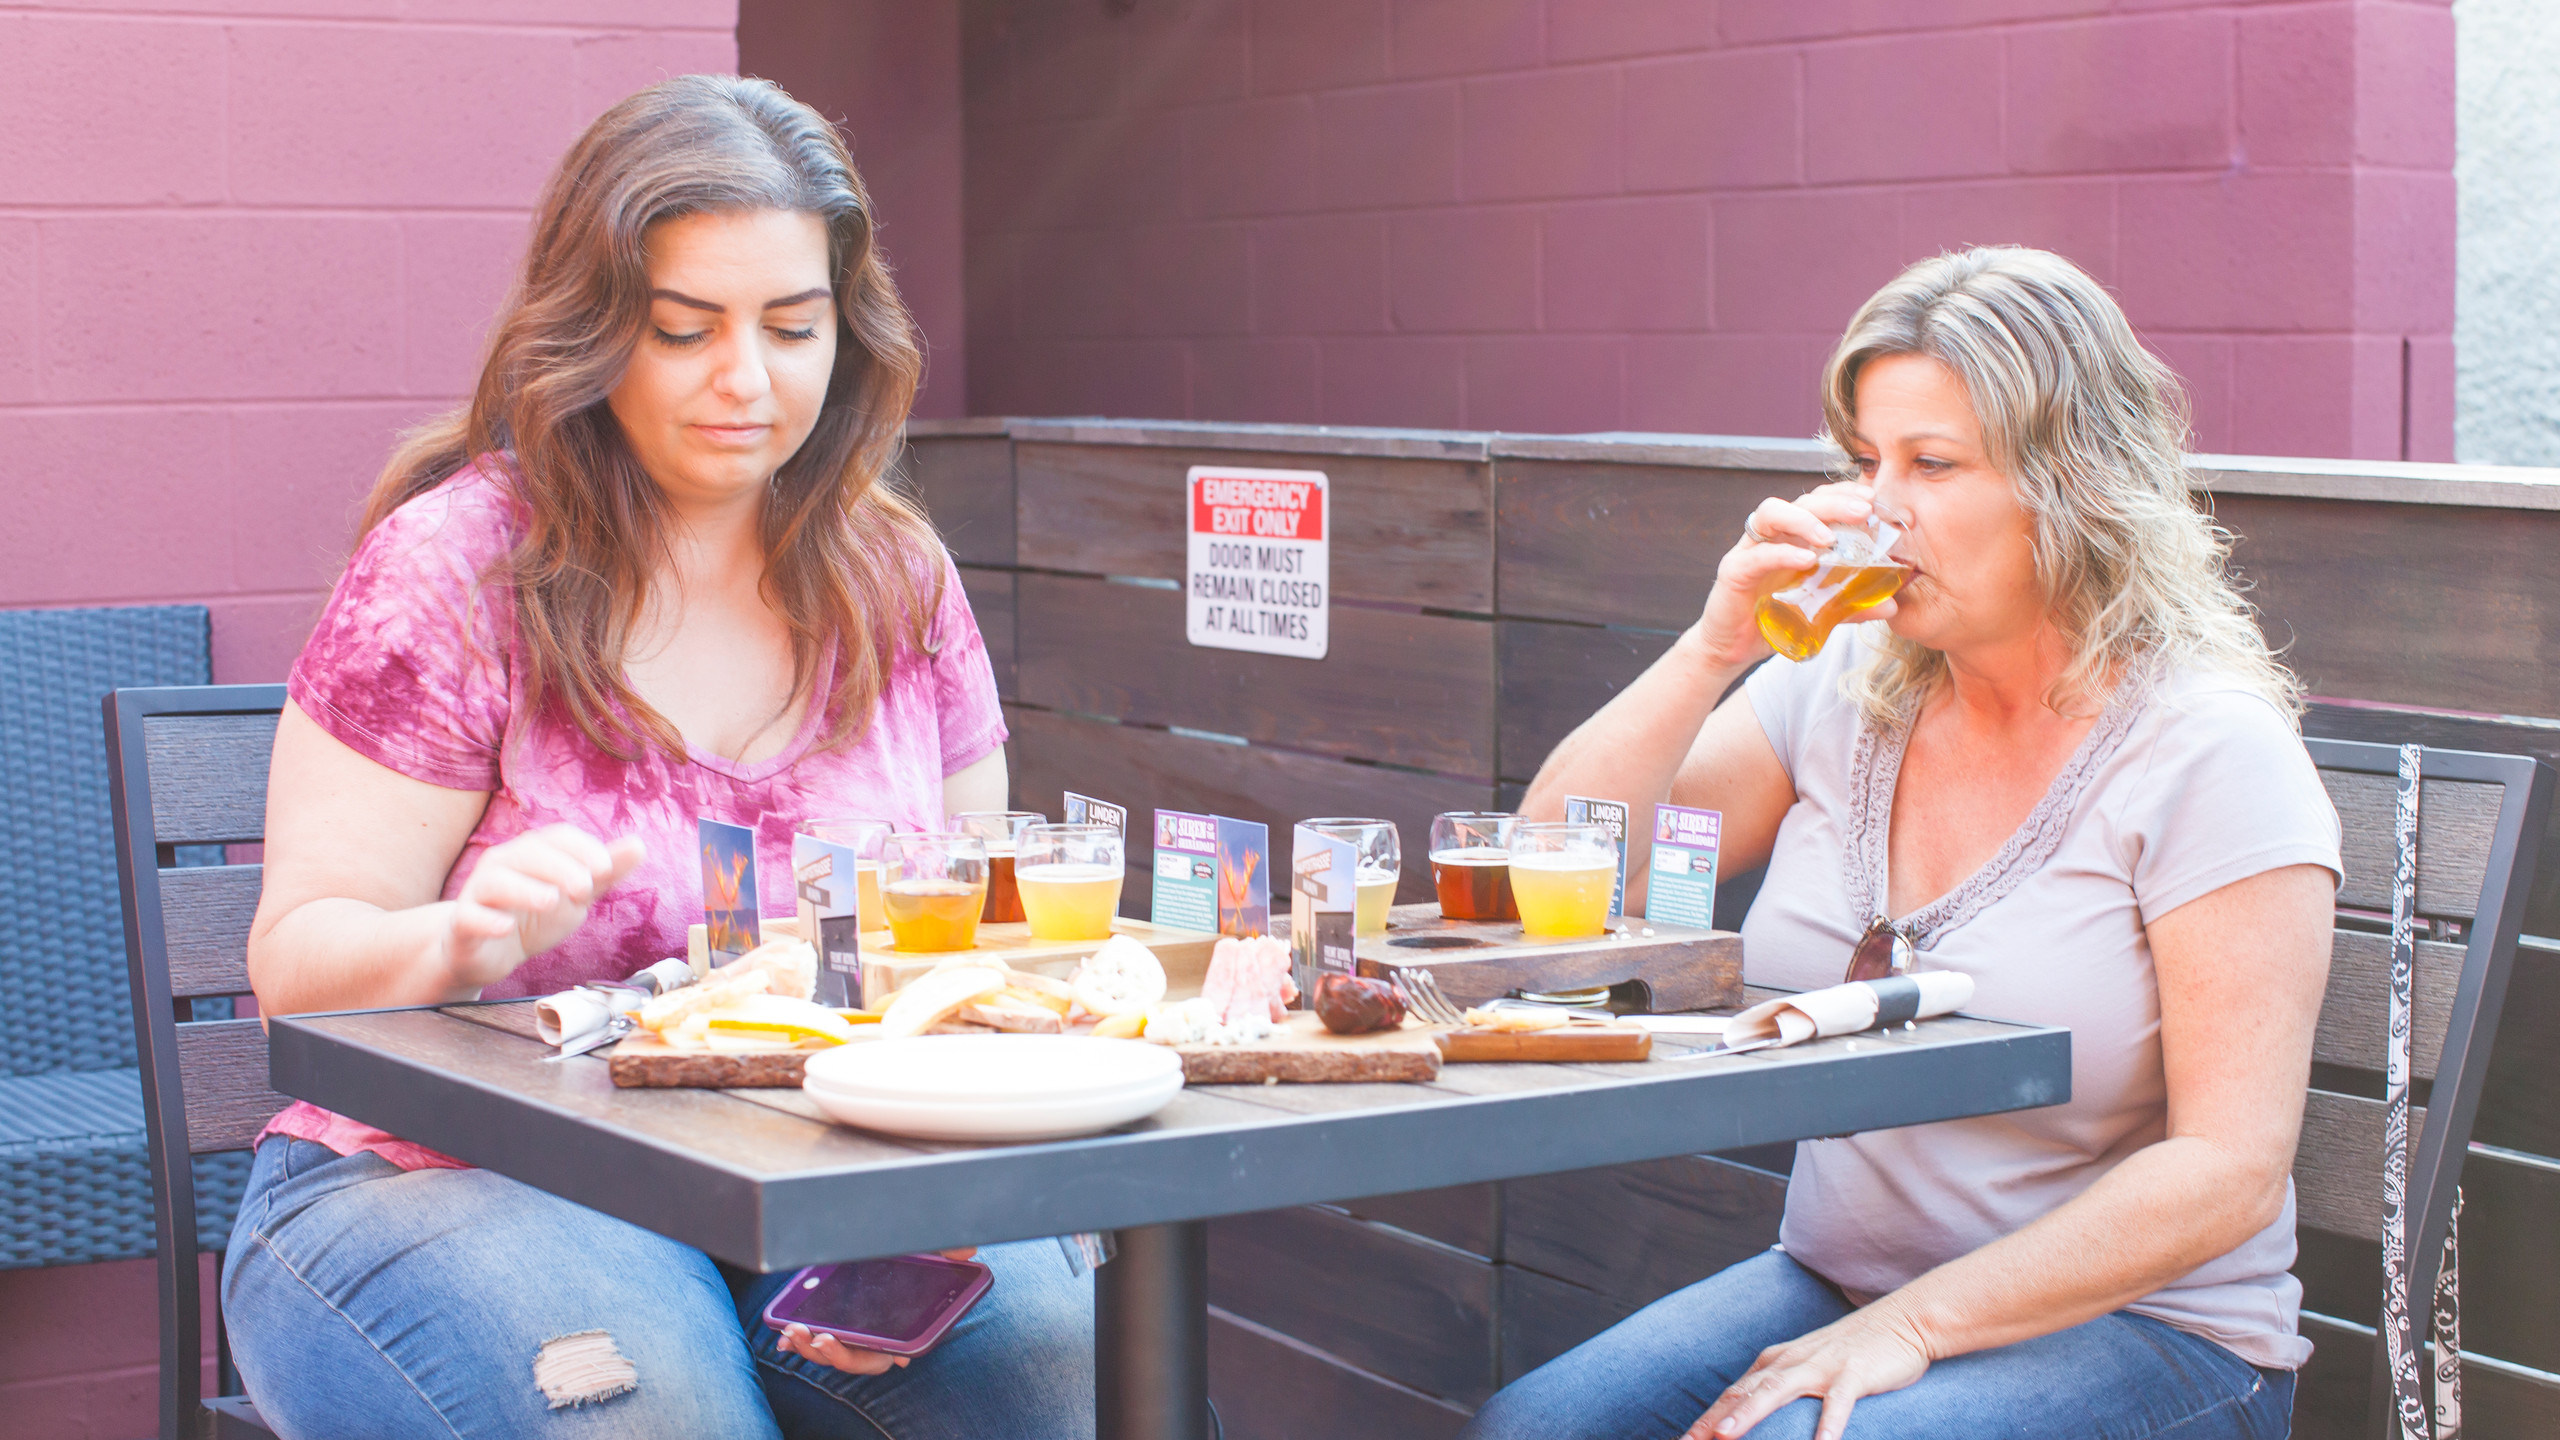 Flights and Food on the patio